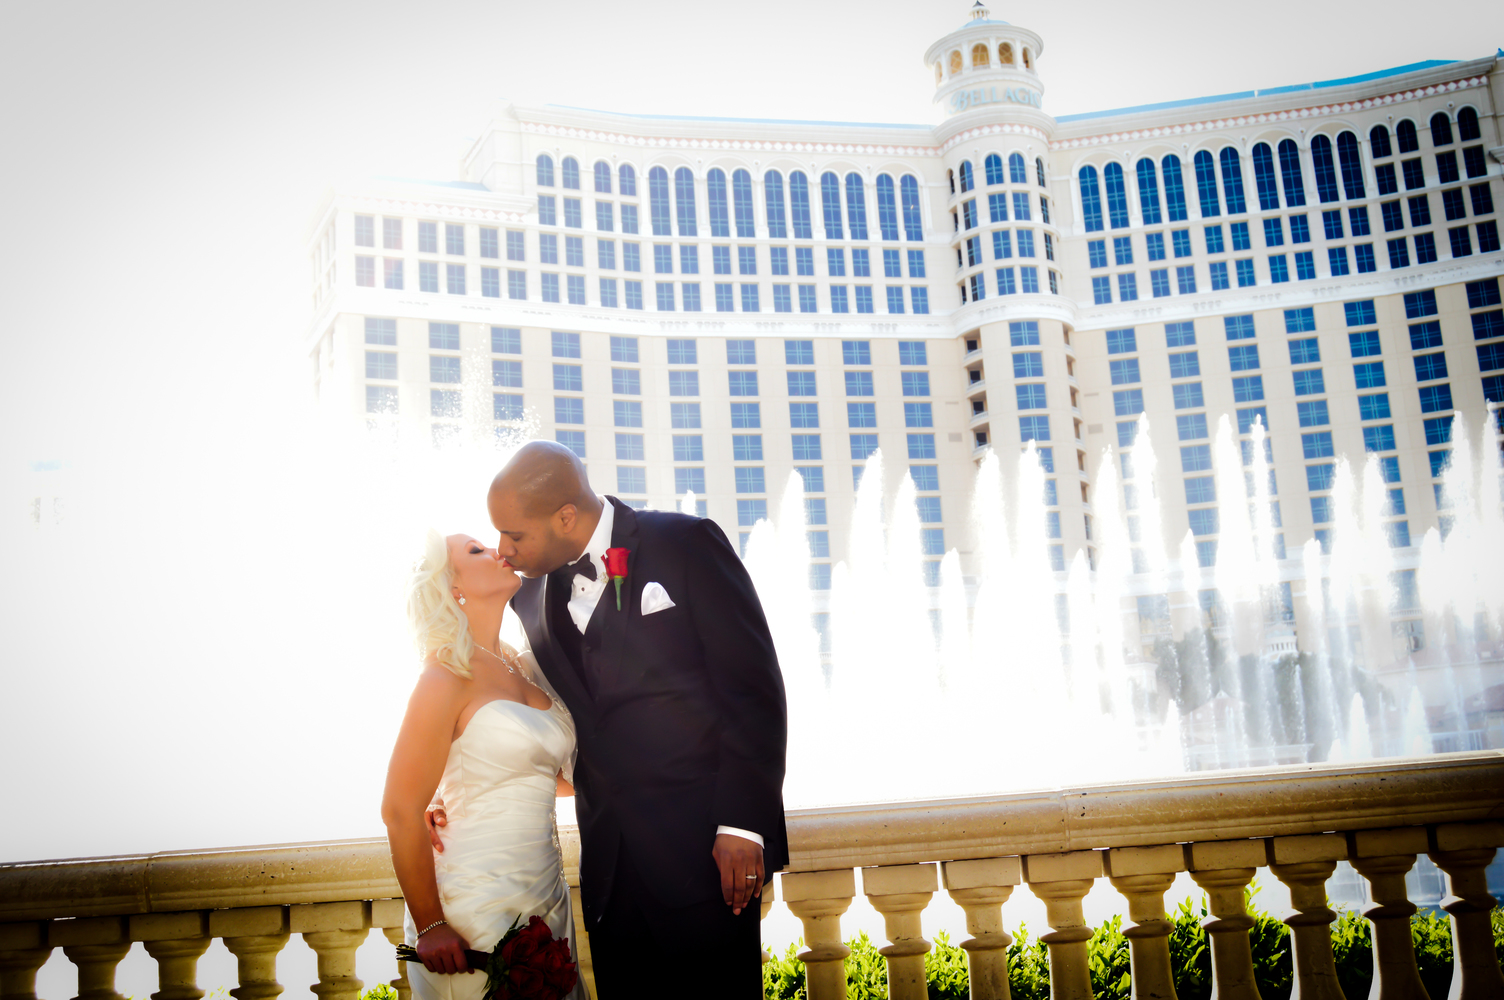 10 Locations For Wedding Photography In Las Vegas Other Than The Strip